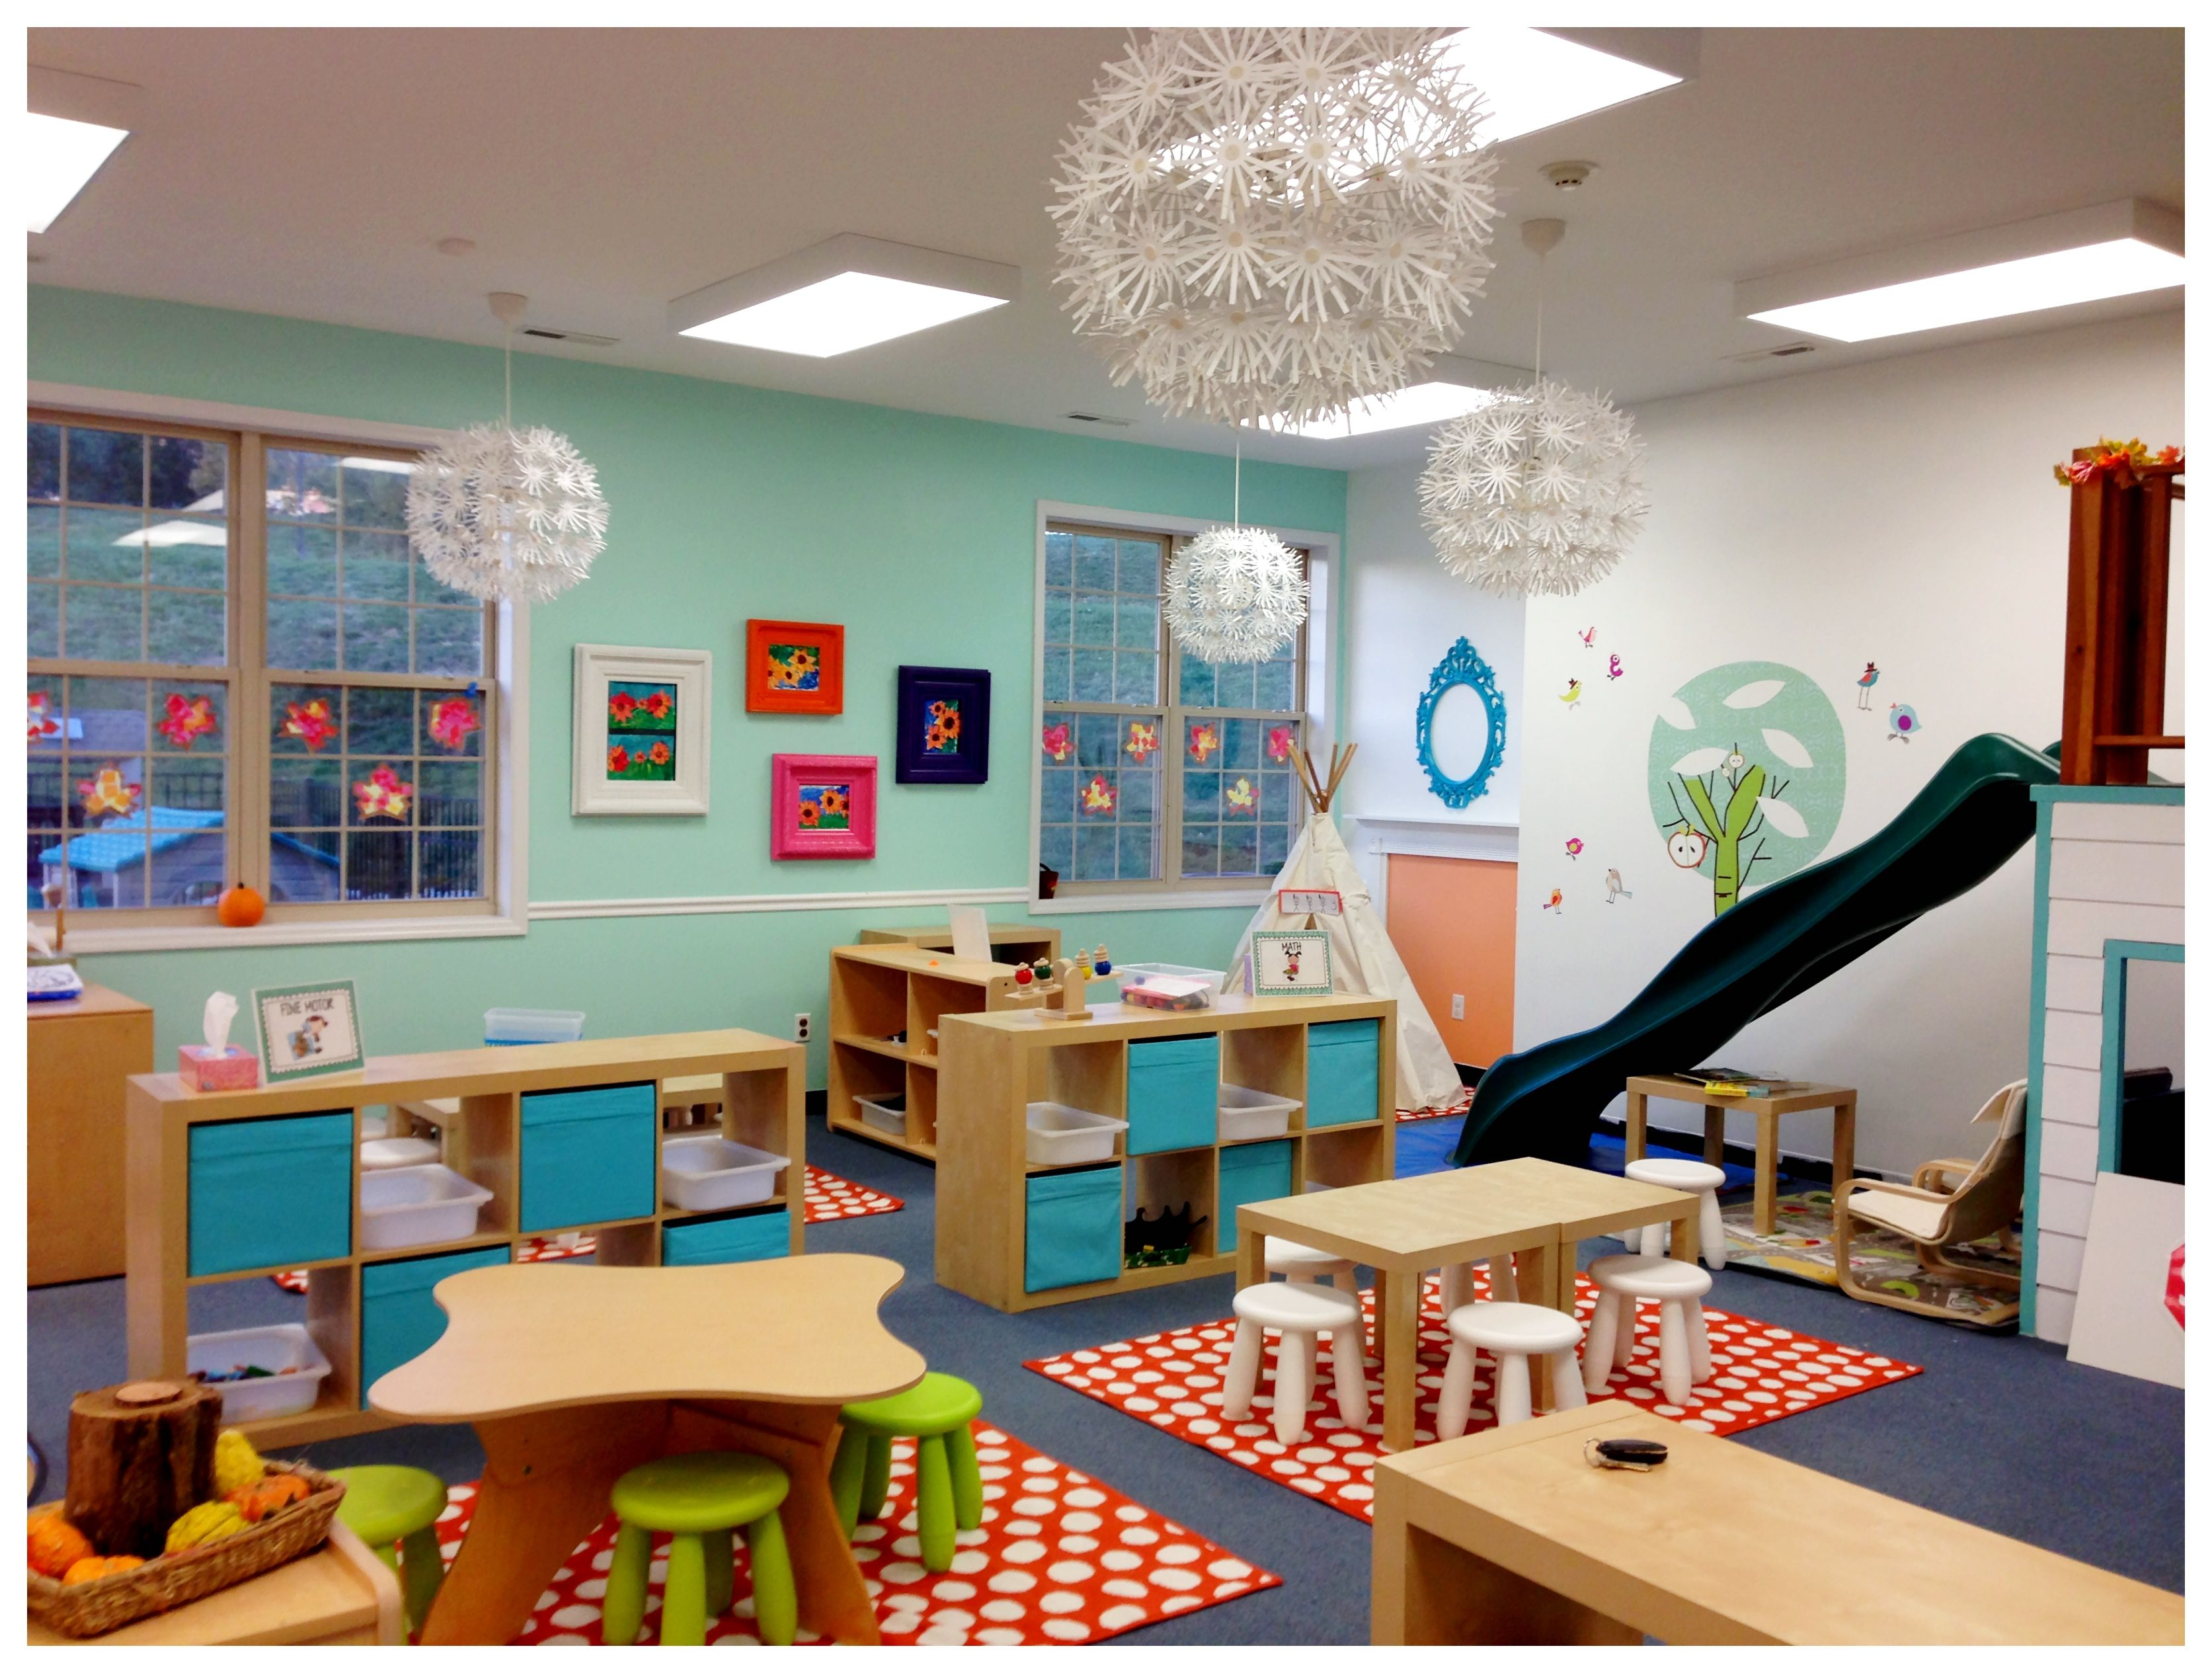 28 best preschool images on pinterest | architecture, daycare